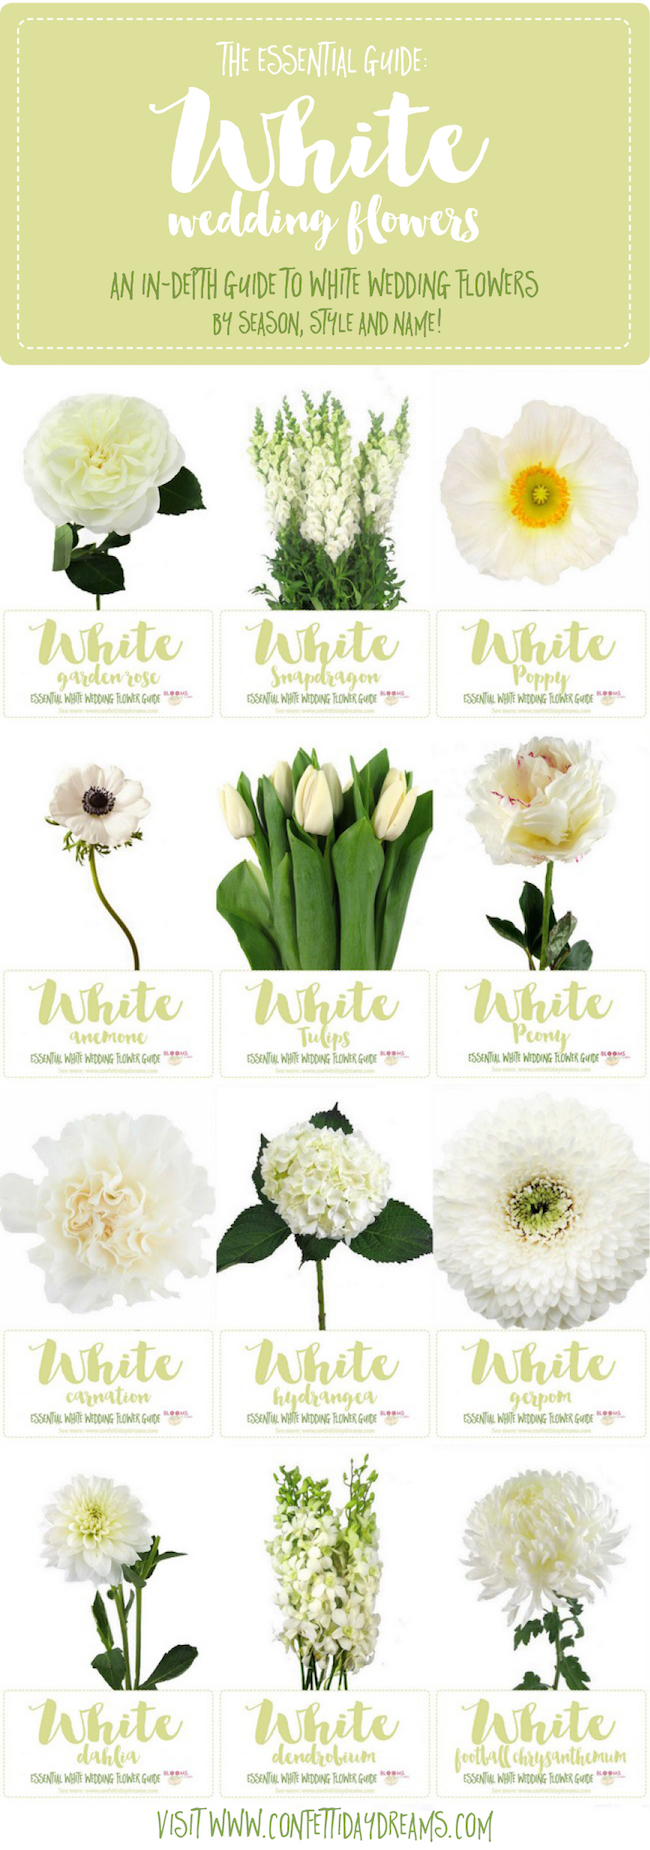 White Wedding Flowers Guide Types of White Flowers, Names +